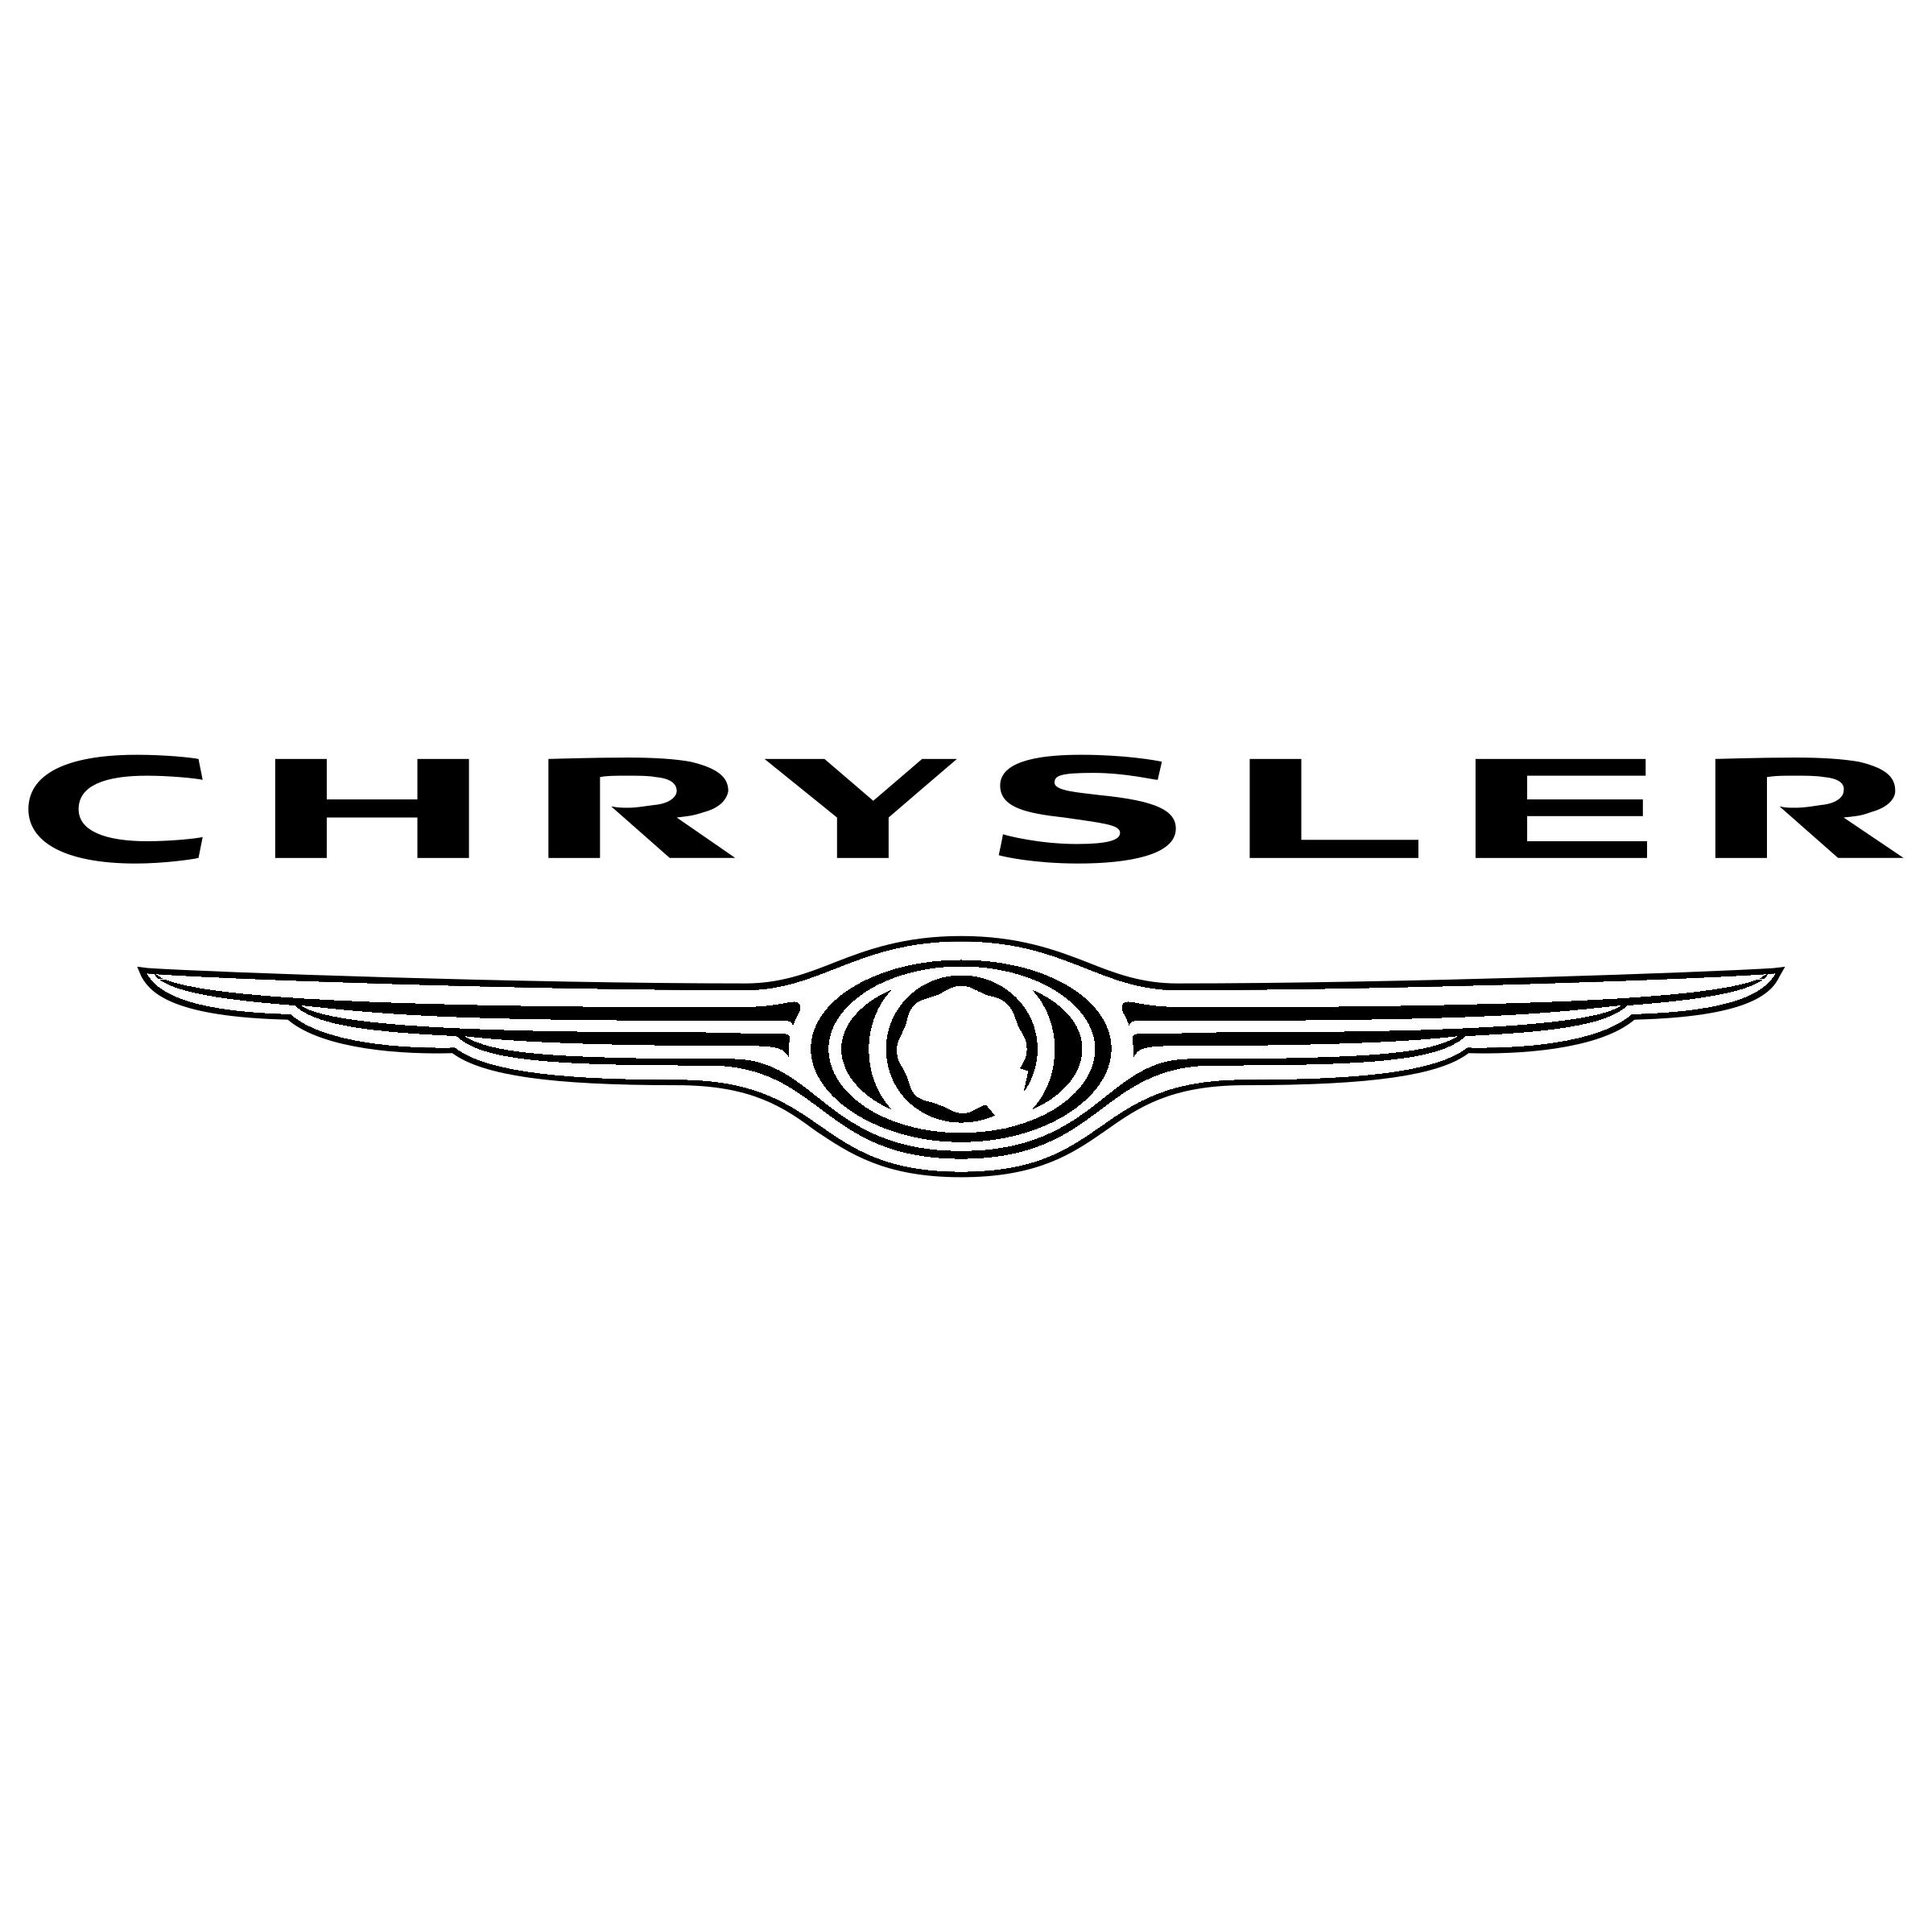 Chrysler Logo Png Transparent & Svg Vector - Pluspng Pluspng.com - Chrysler Logo PNG